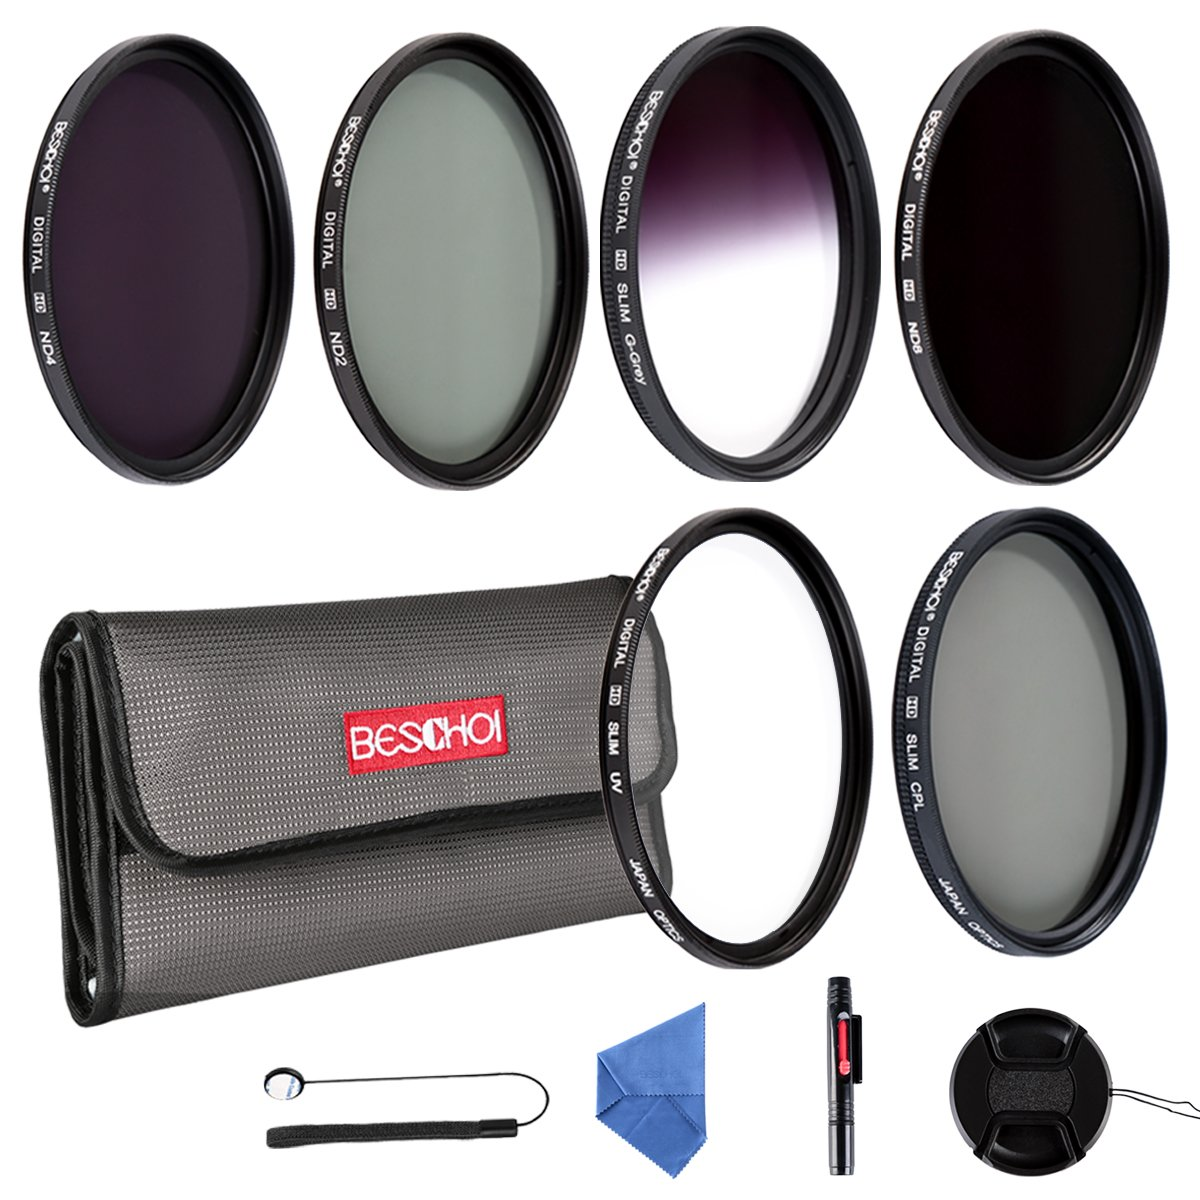 Beschoi 77mm UV Filter, CPL Filter, ND Filter Kit (ND2 + ND4 + ND8), Graduated Grey Color Filter Set, Center Pinch Lens Cap, Cap Keeper Leash, Lens Cleaning Pen, Filter Carry Pouch,Lens Cleaning Cloth by Beschoi